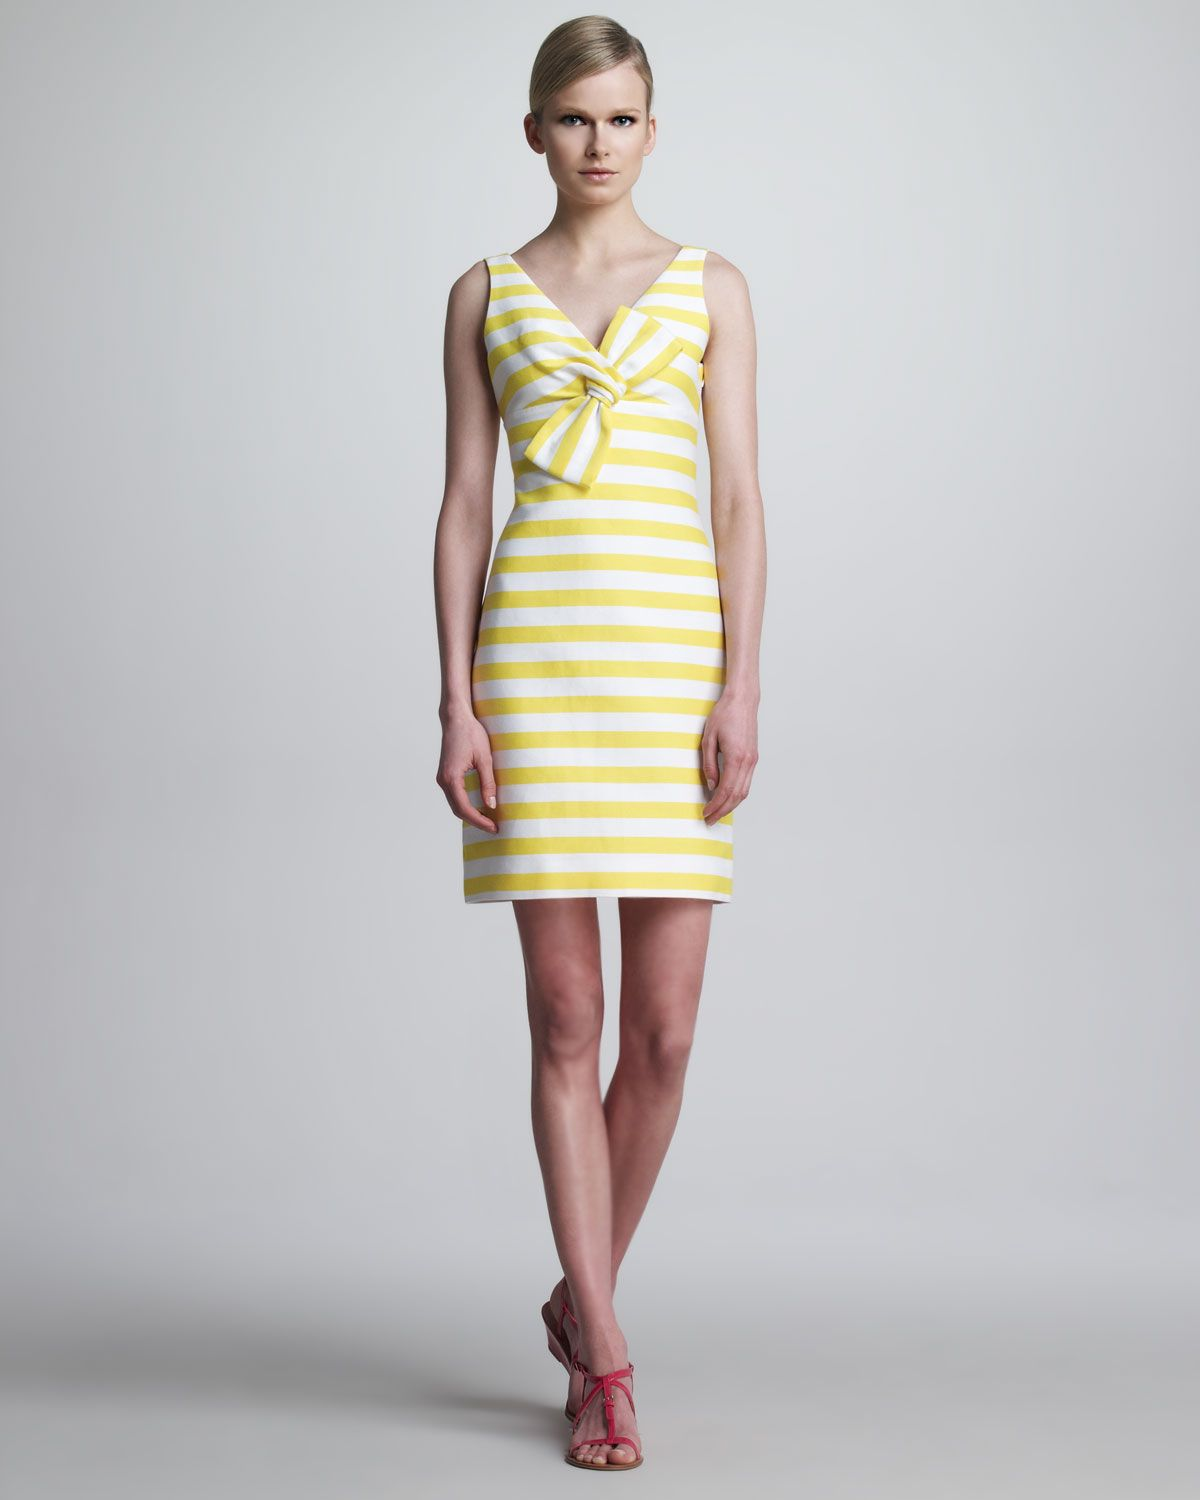 Kate spade new york silverscreen sleeveless striped bow dress kate spade new york silverscreen sleeveless striped bow dress neiman marcus ombrellifo Image collections